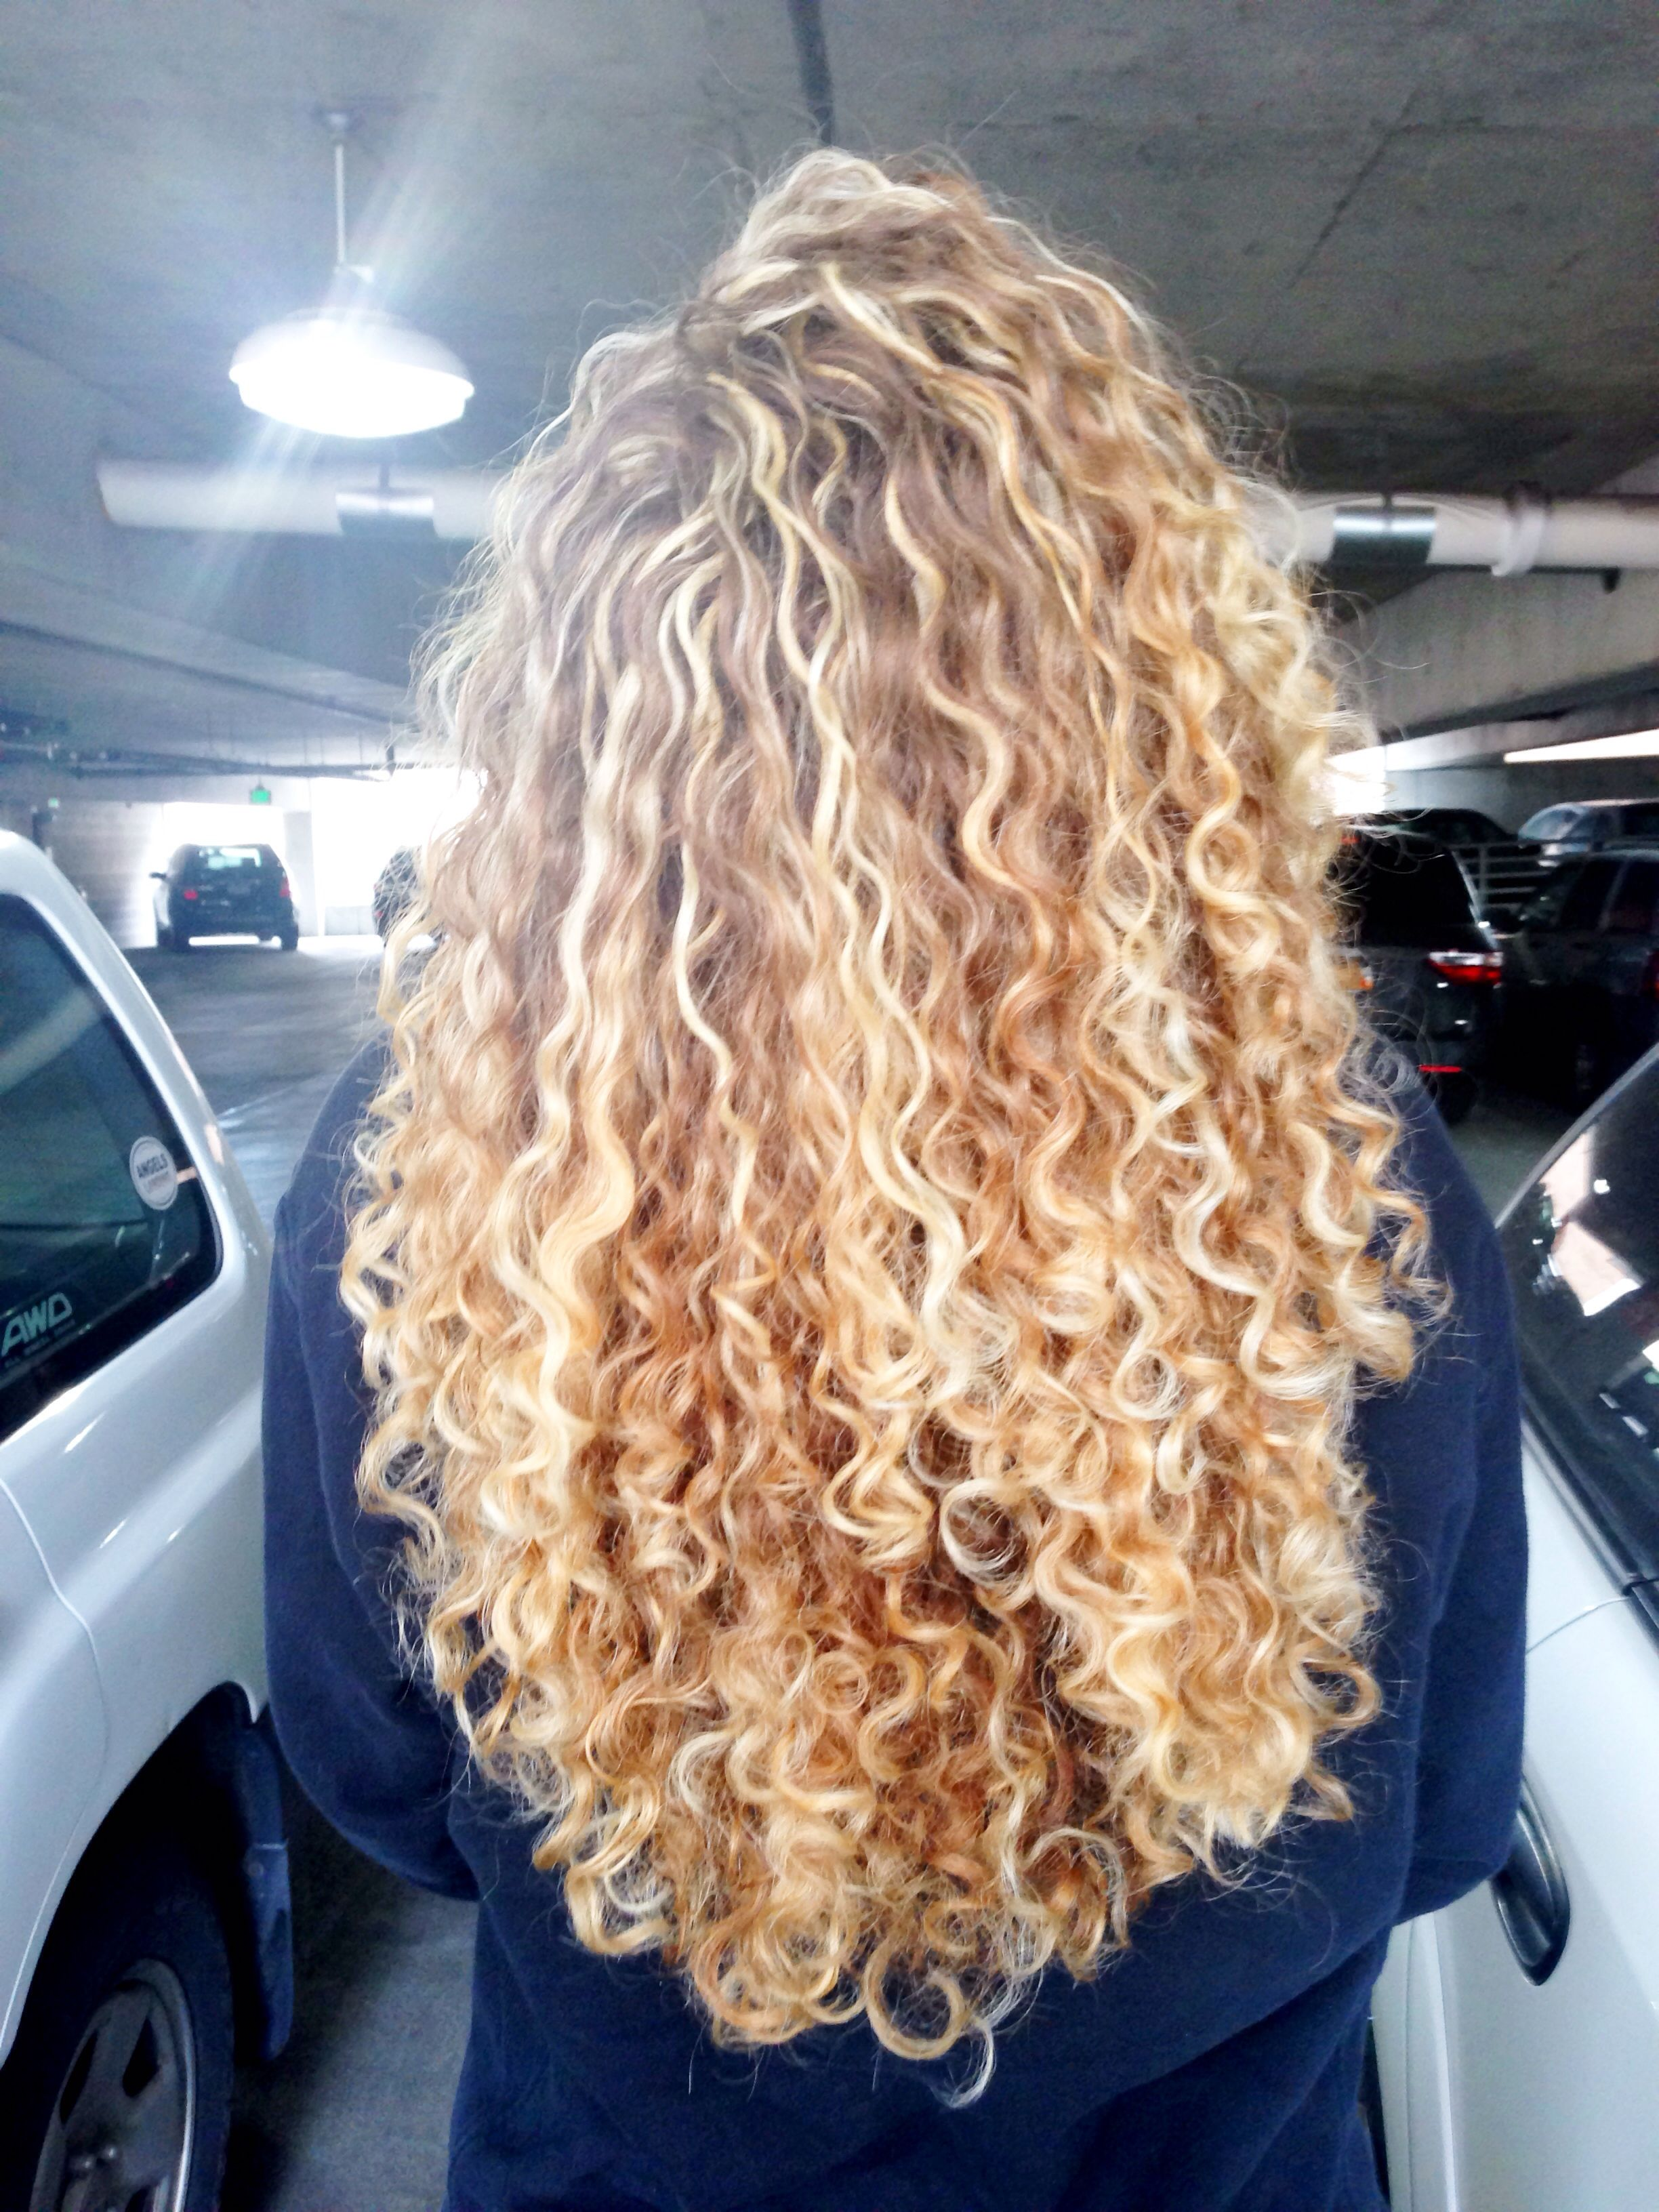 Curly Dirty Blonde Hair 101